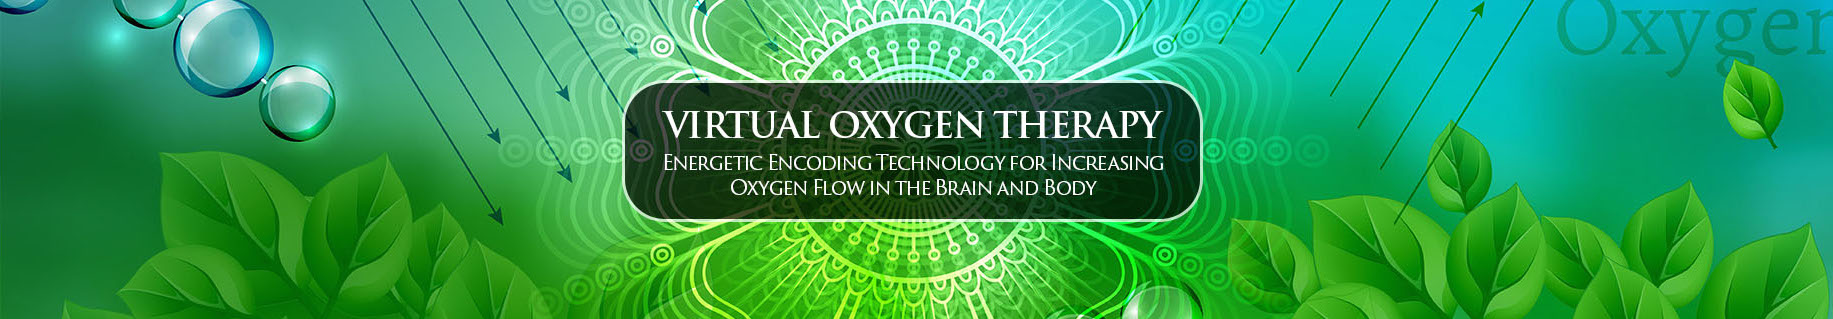 Virtual Oxygen Therapy